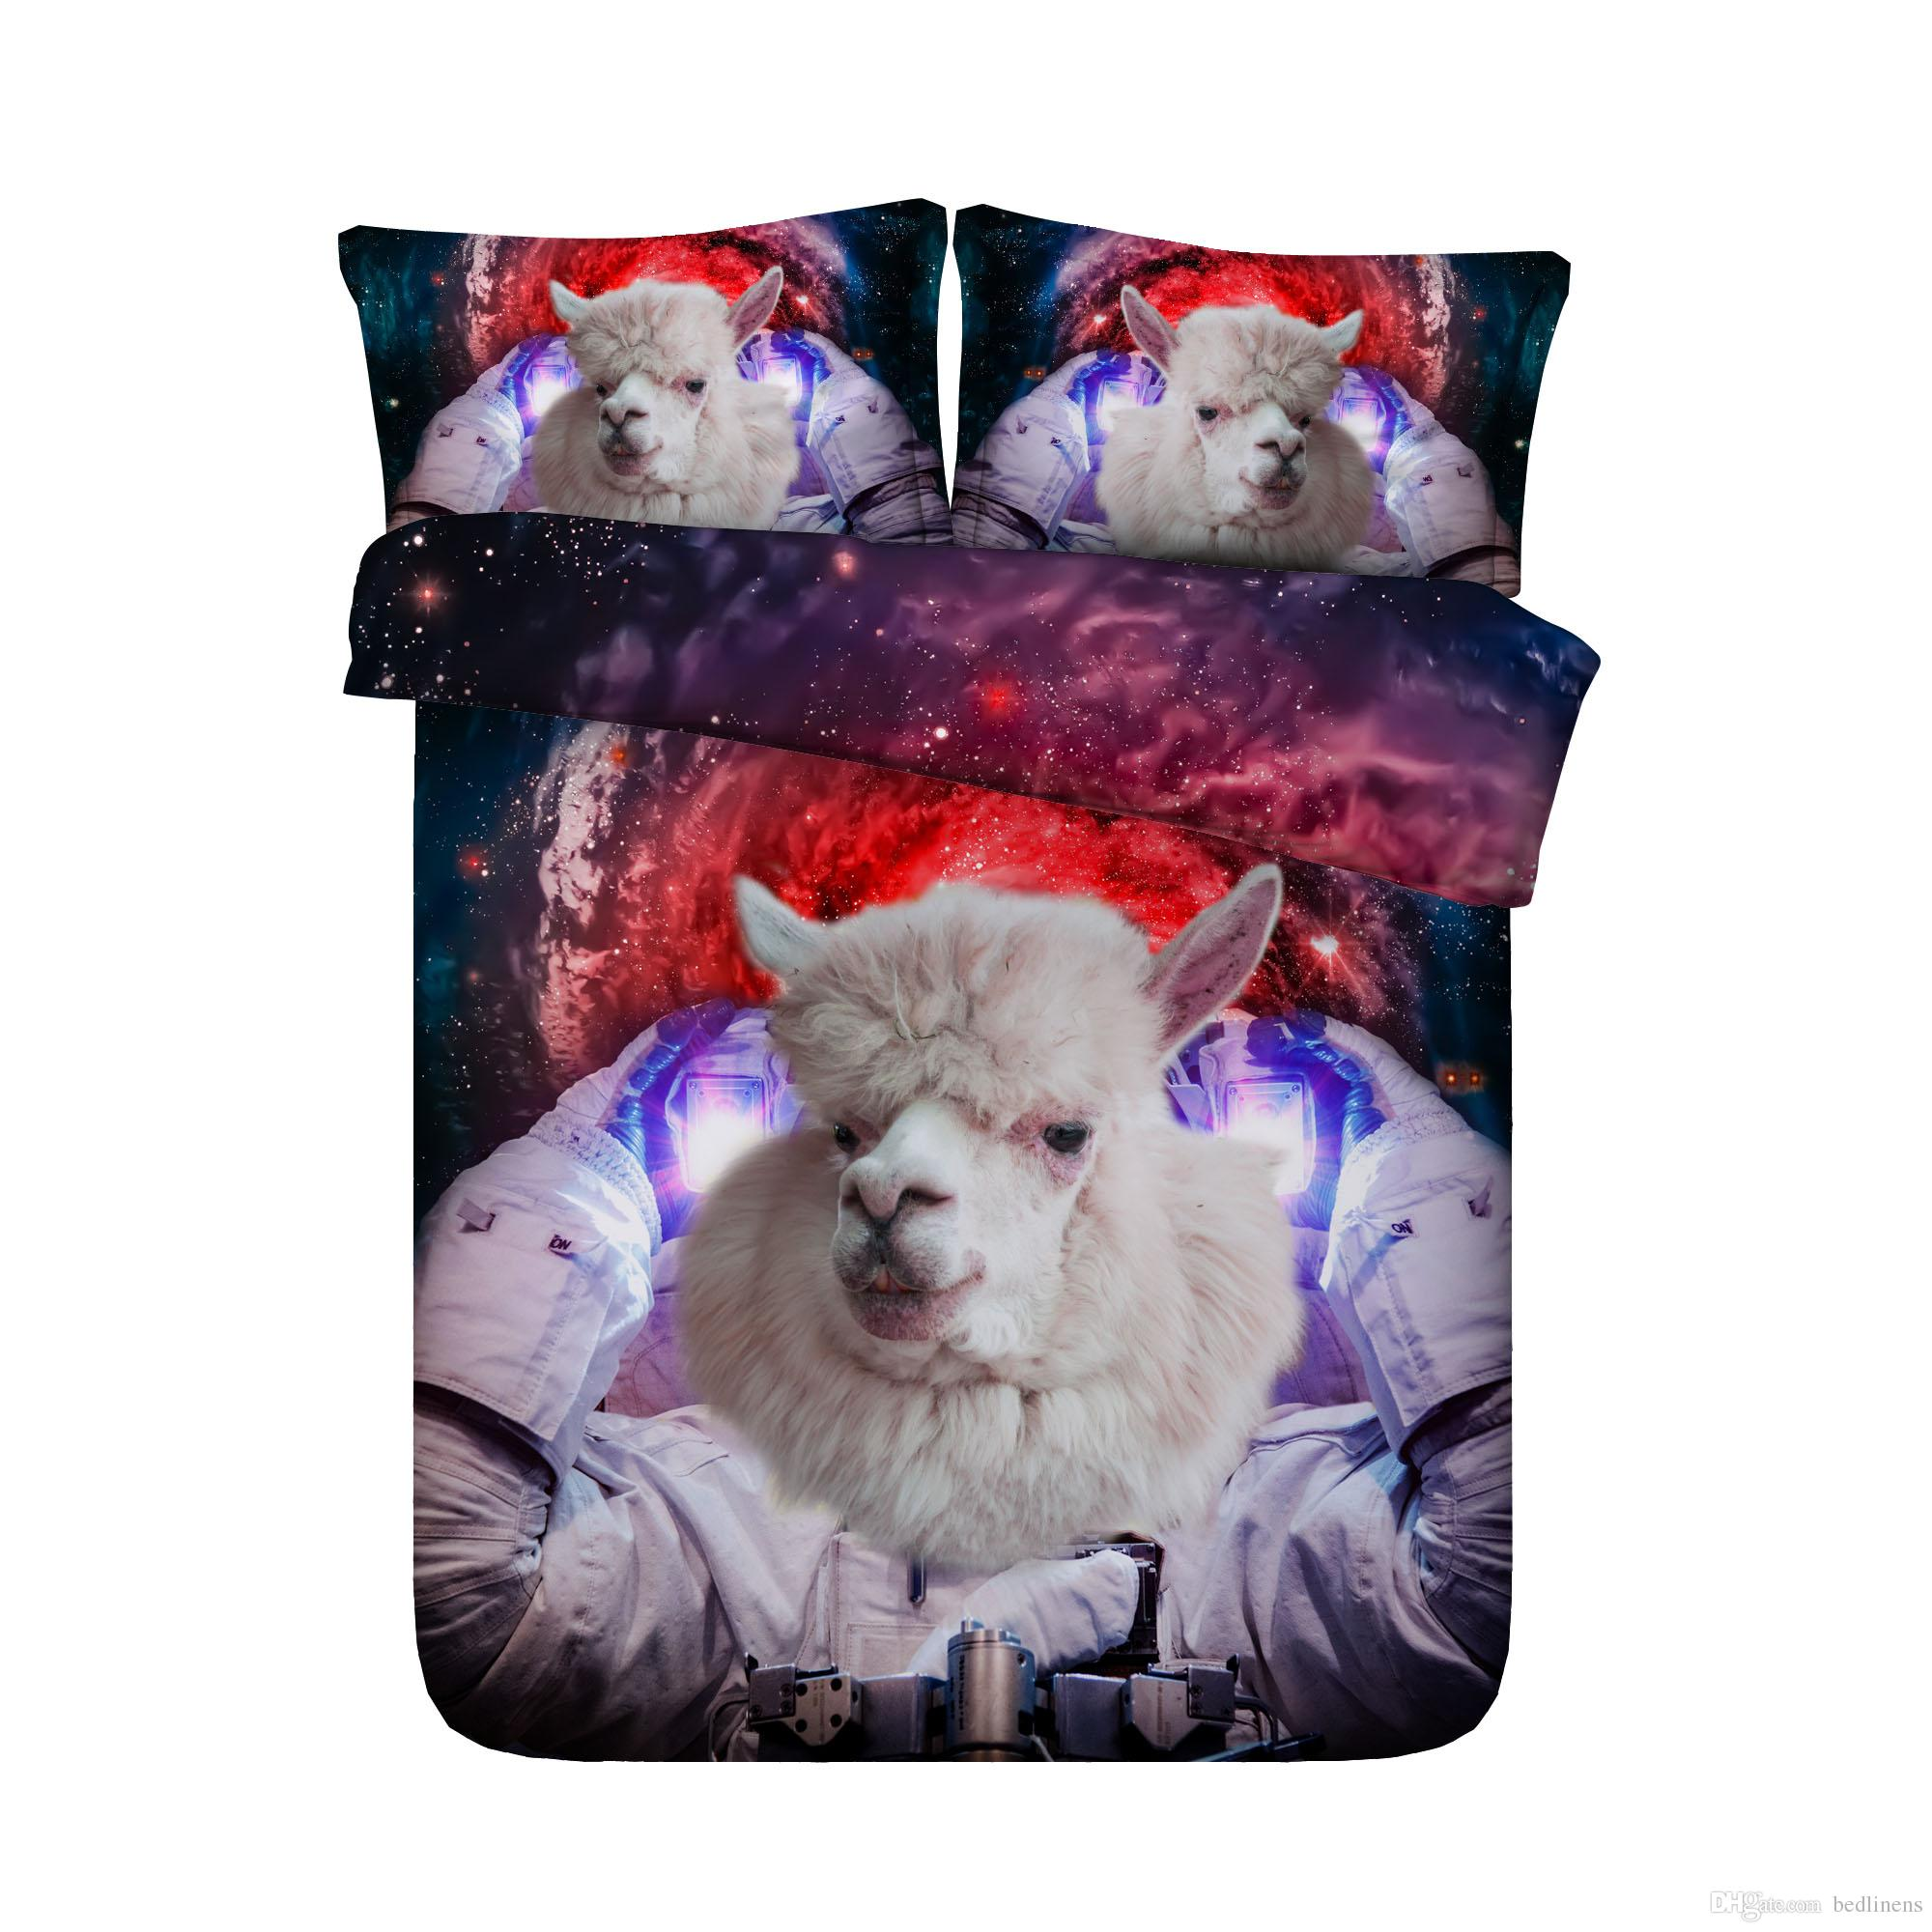 3D Printed Astronautical Sheep Bedding Set Twin Full Queen King Size Bedspread Bedclothes Duvet Covers Pillow Shams Comforter Set Animal